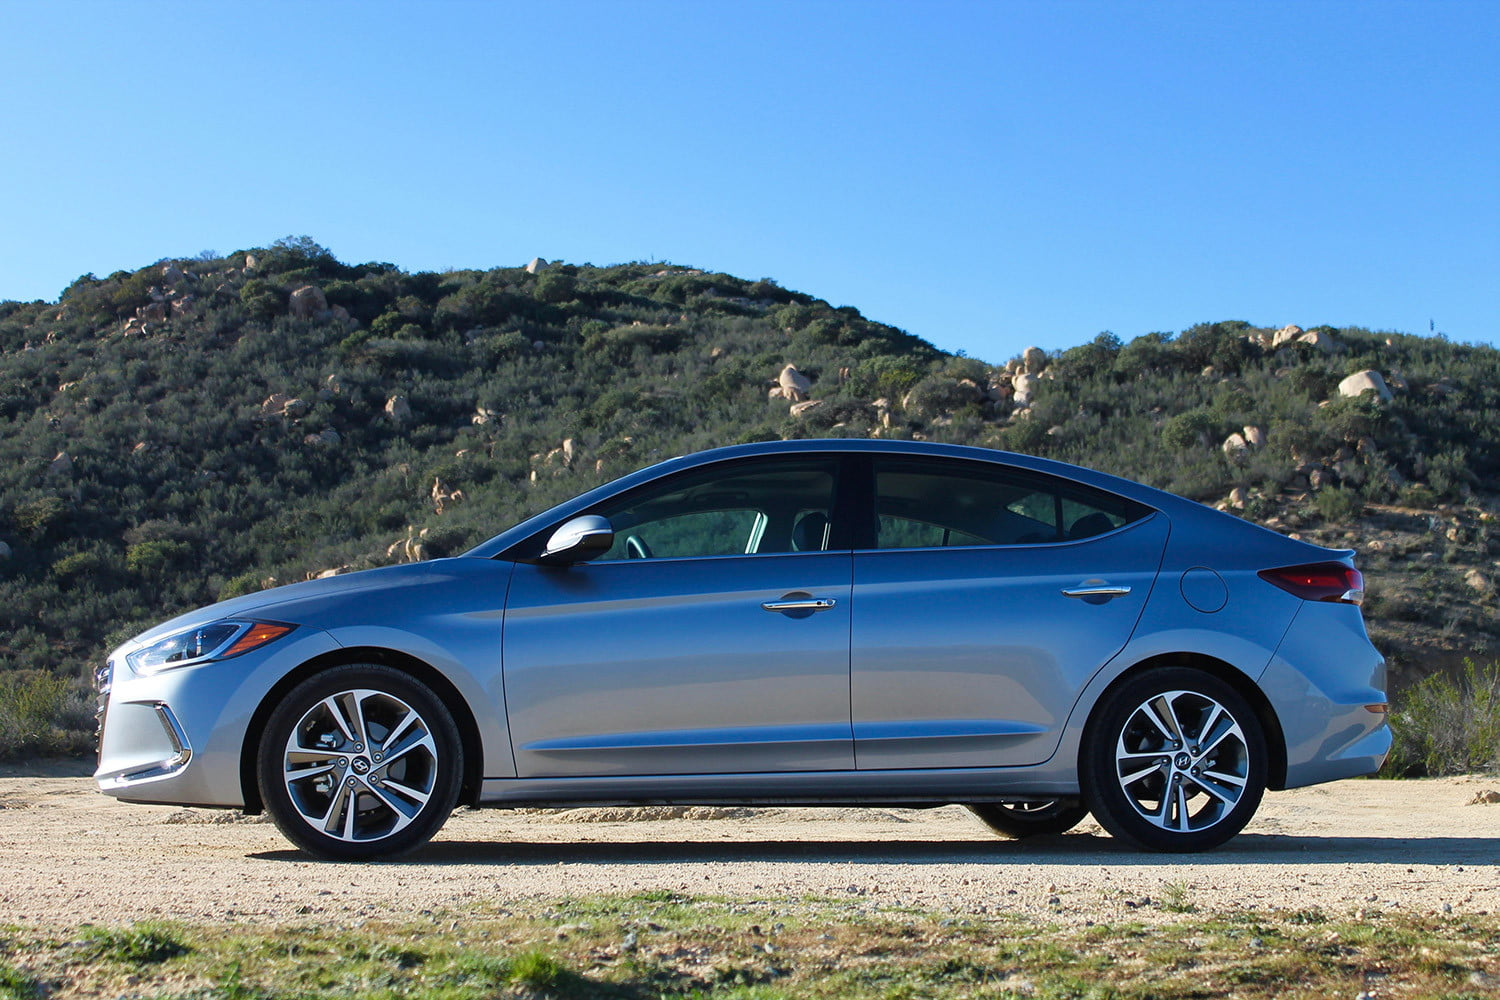 2017 hyundai elantra first drive review pictures specs. Black Bedroom Furniture Sets. Home Design Ideas